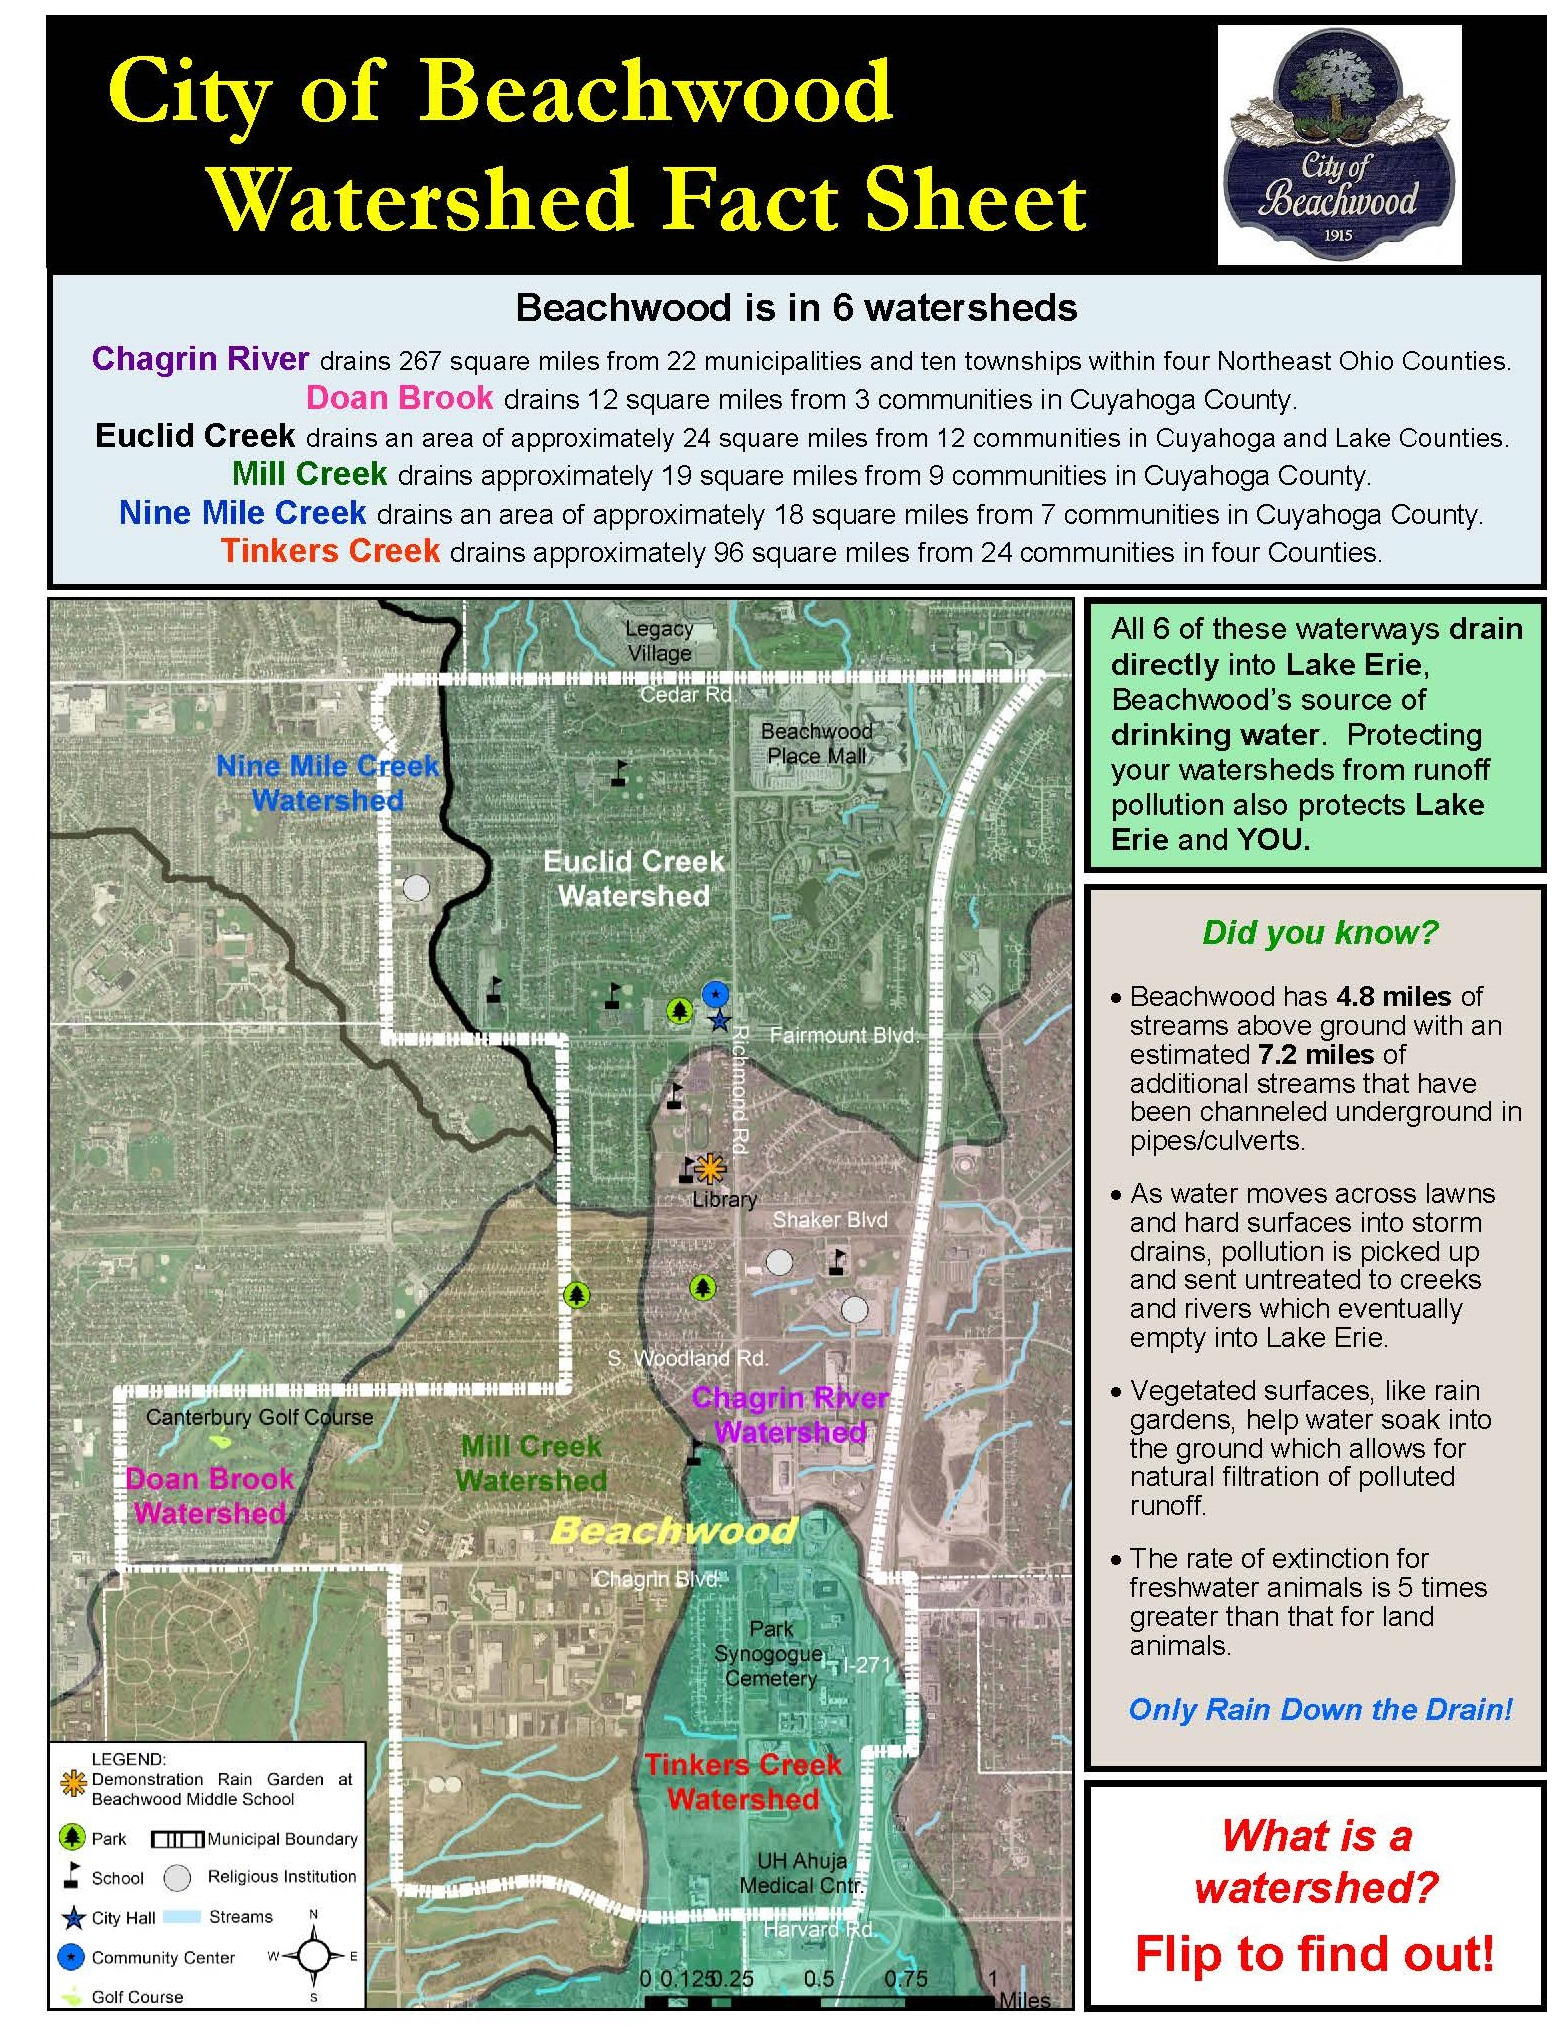 City of Beachwood Watershed Fact Sheet Side 1